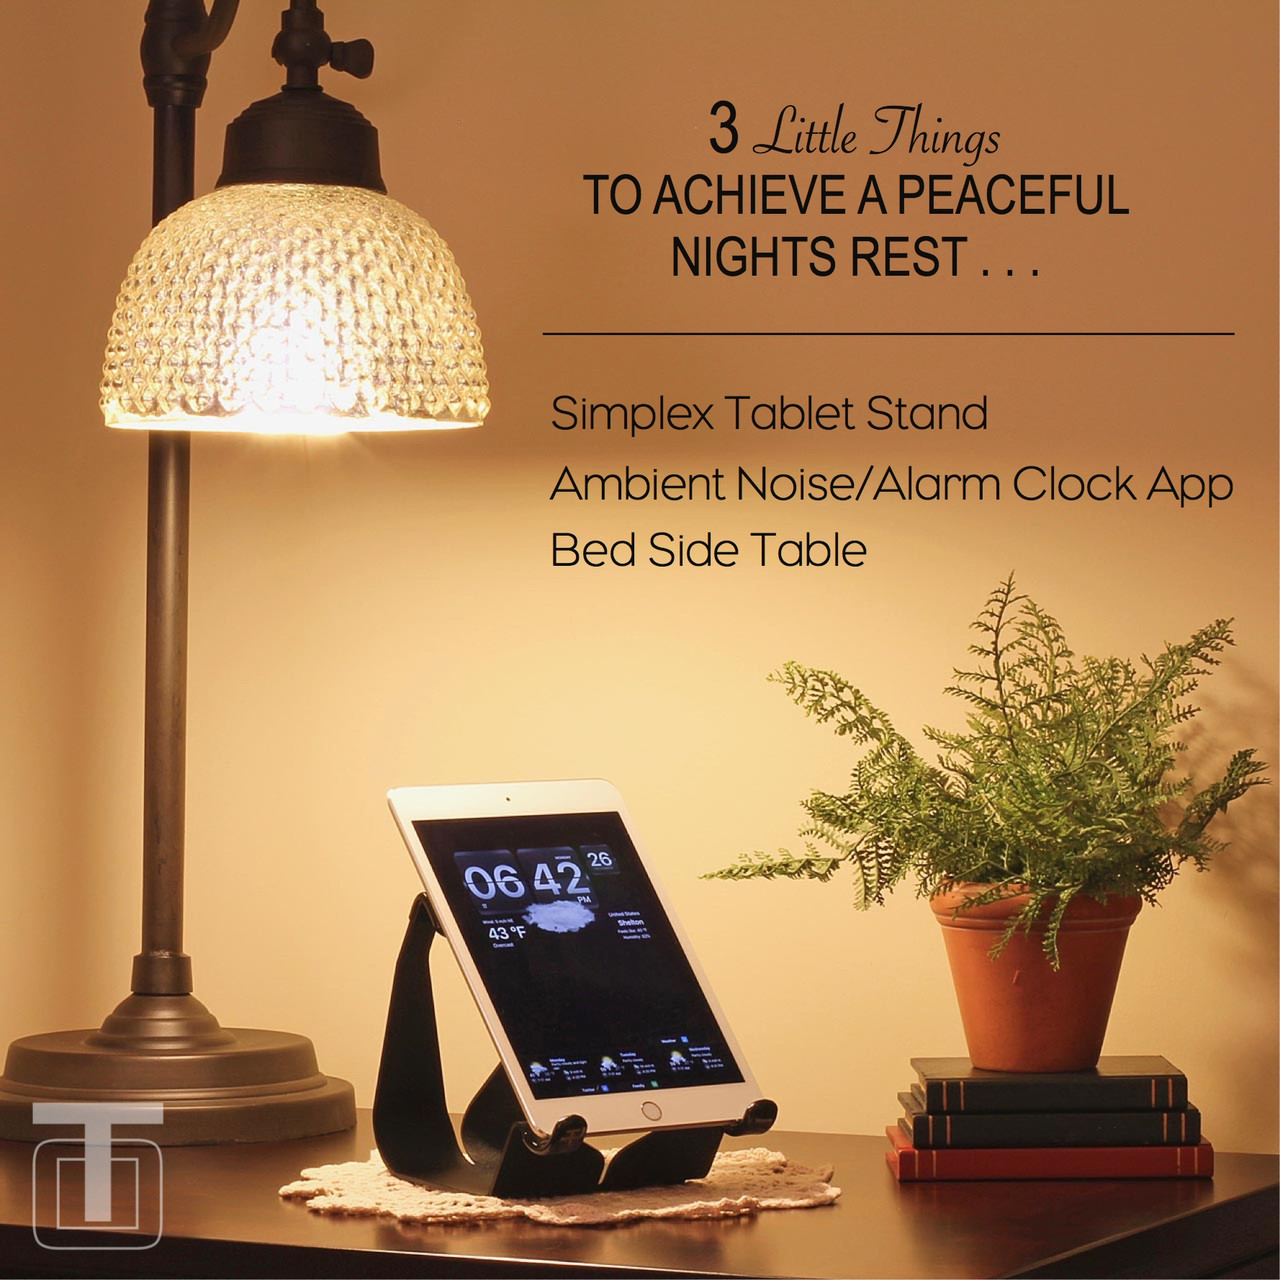 3 Tips To Achieve a Peaceful Nights Sleep with the Simplex Tablet Stand